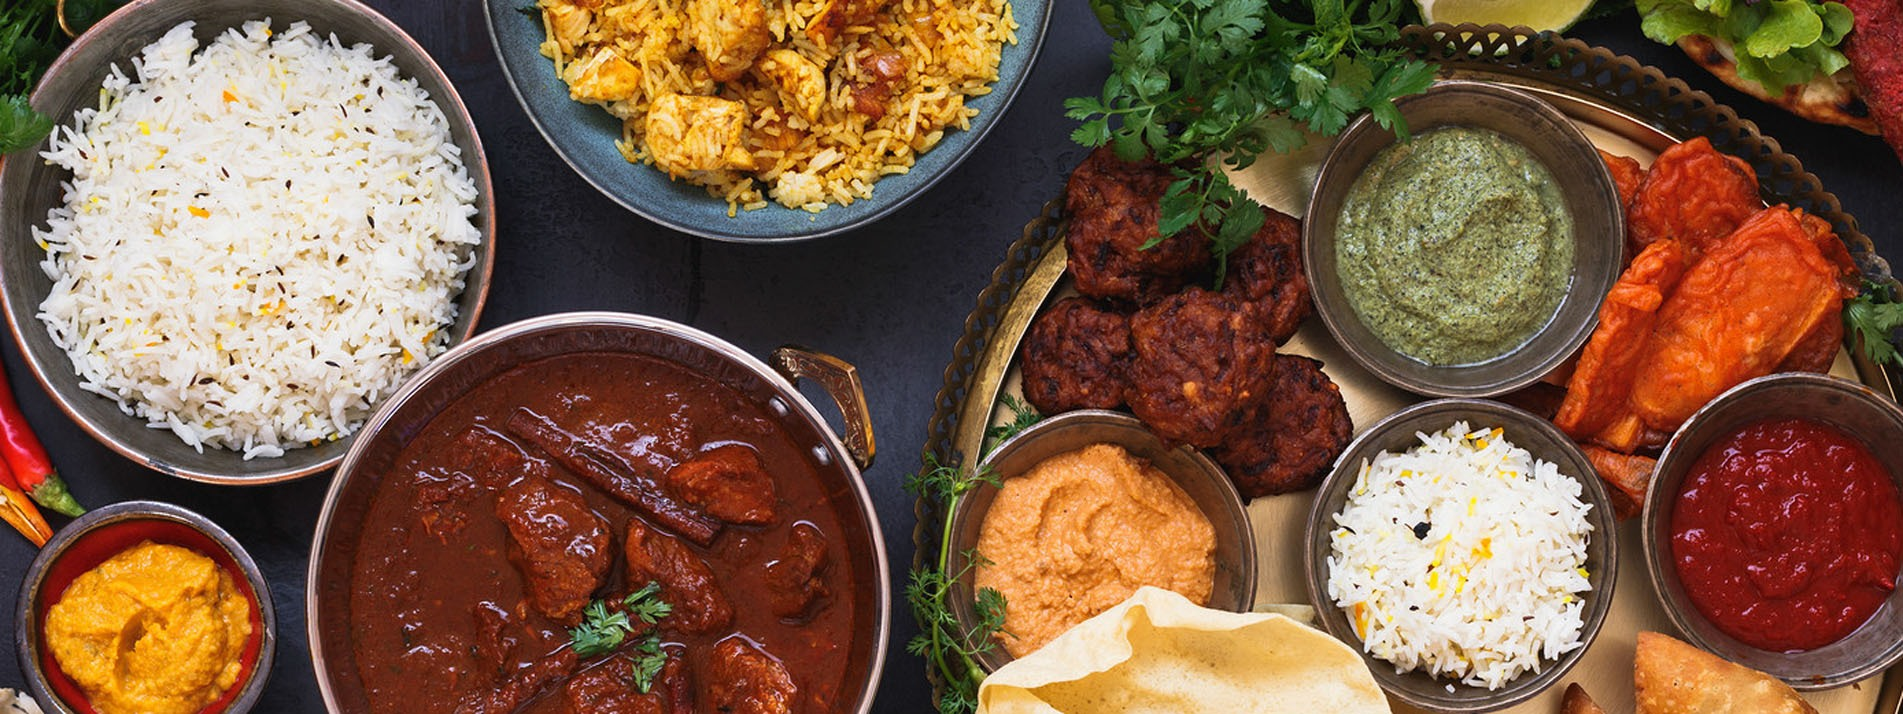 9-Day India Highlights and Food Tour